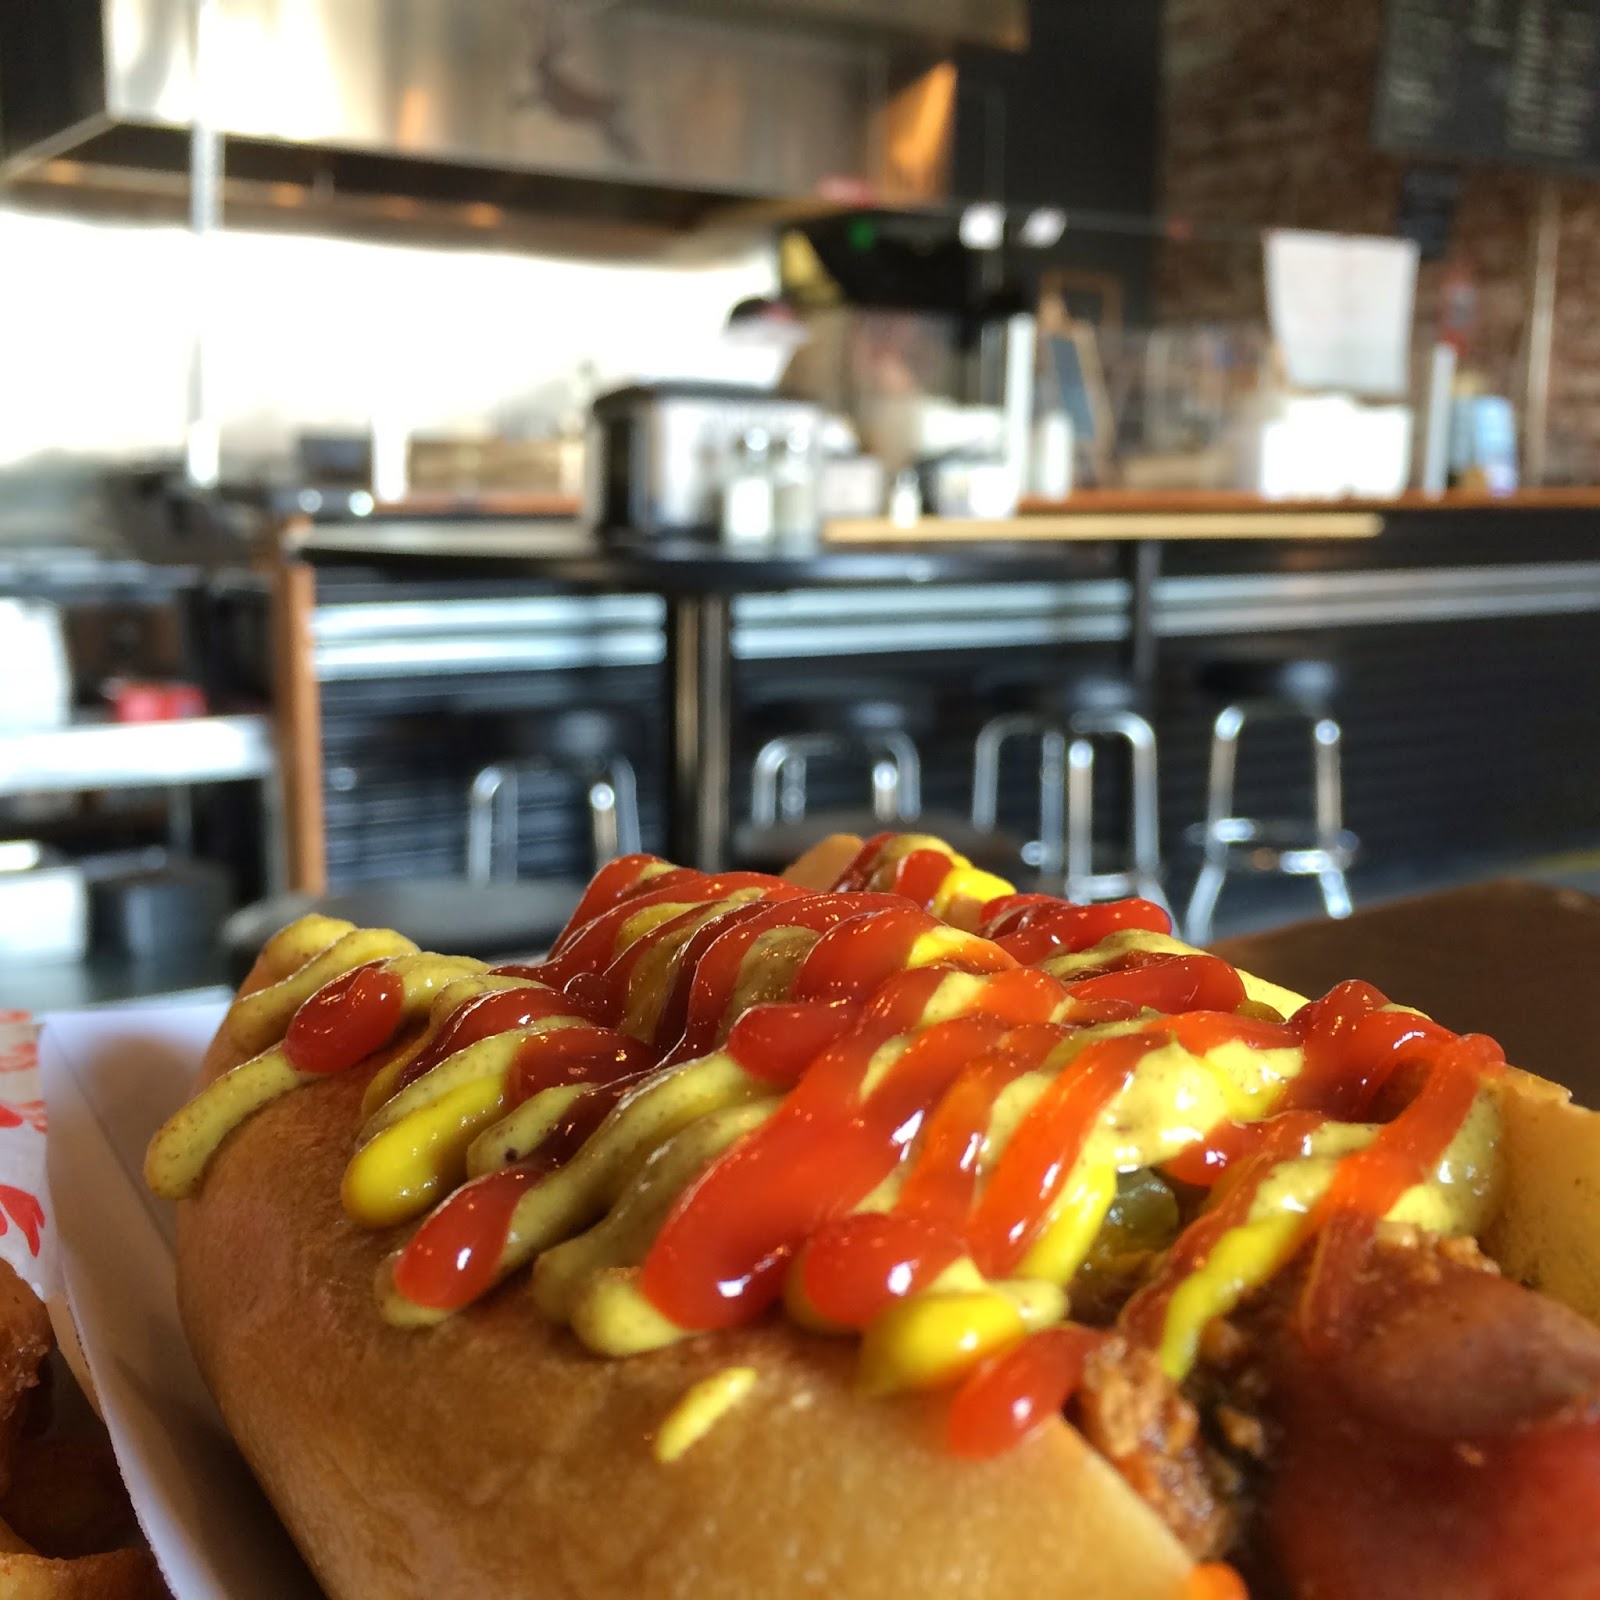 Beef Frank topped with Dill Pickle Relish, Chili, and the most beautiful array of Ketchup and Mustard you've ever seen